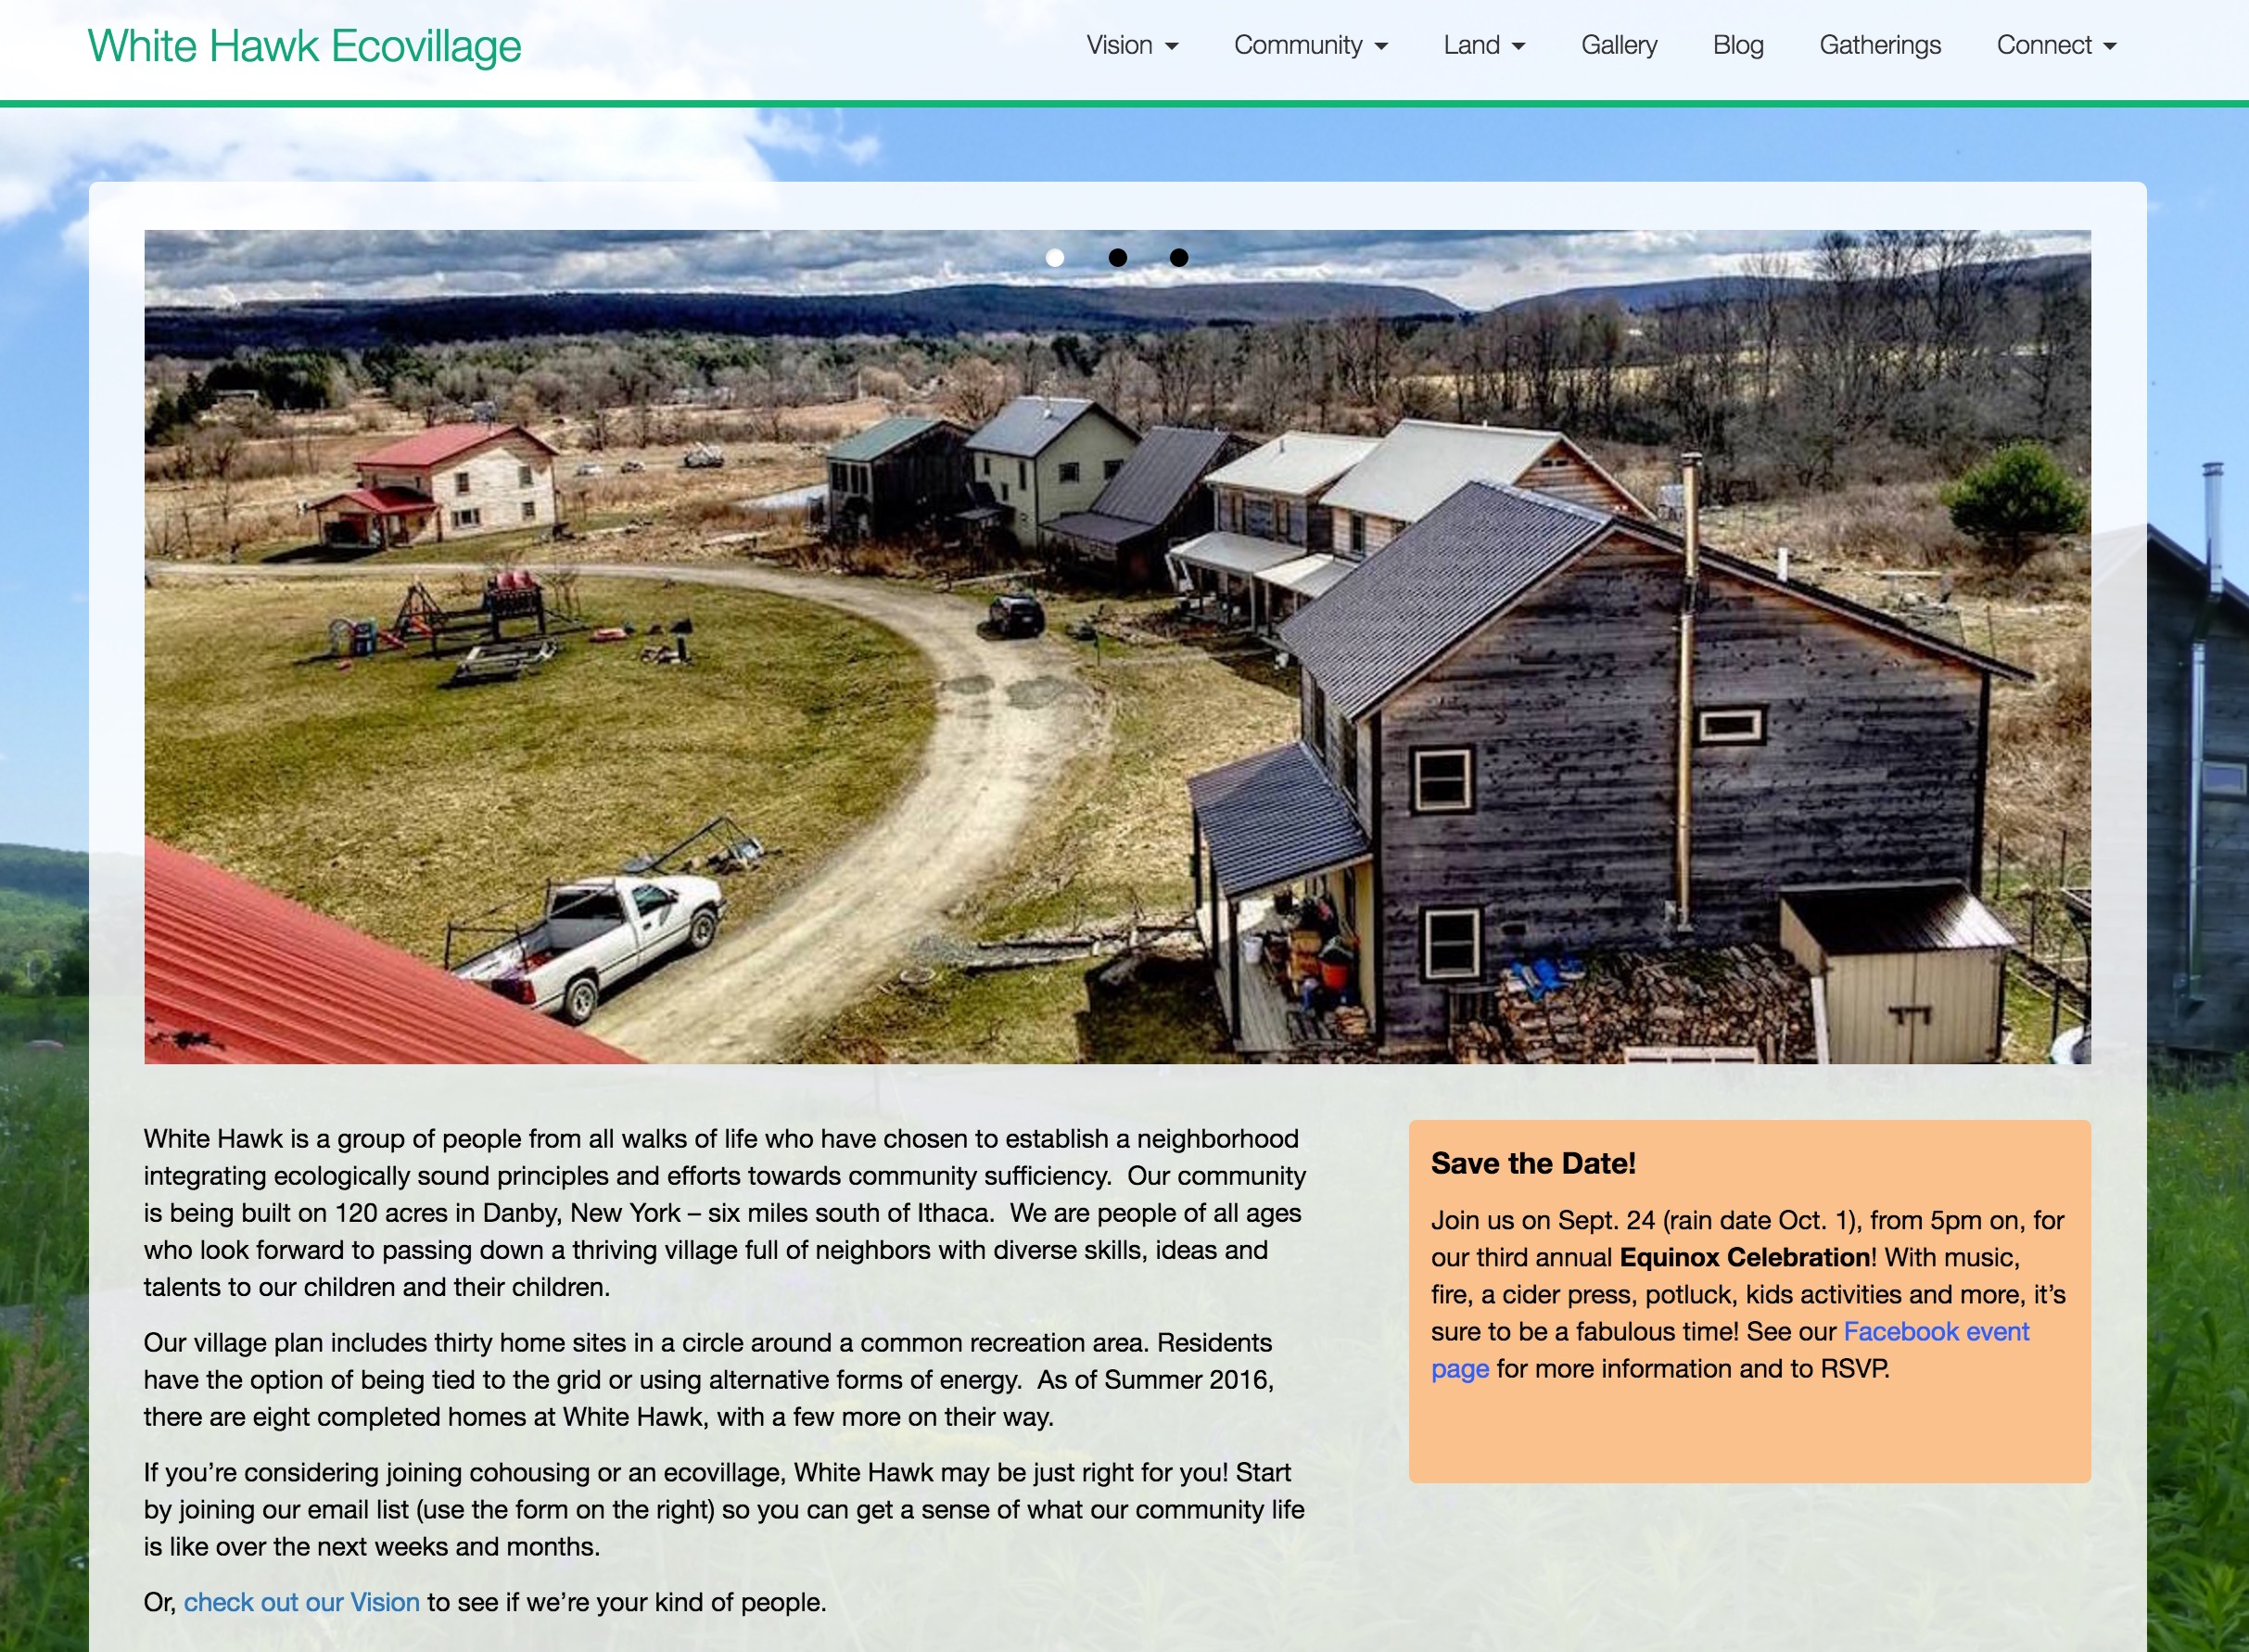 White Hawk Ecovillage Website design and development in Wordpress